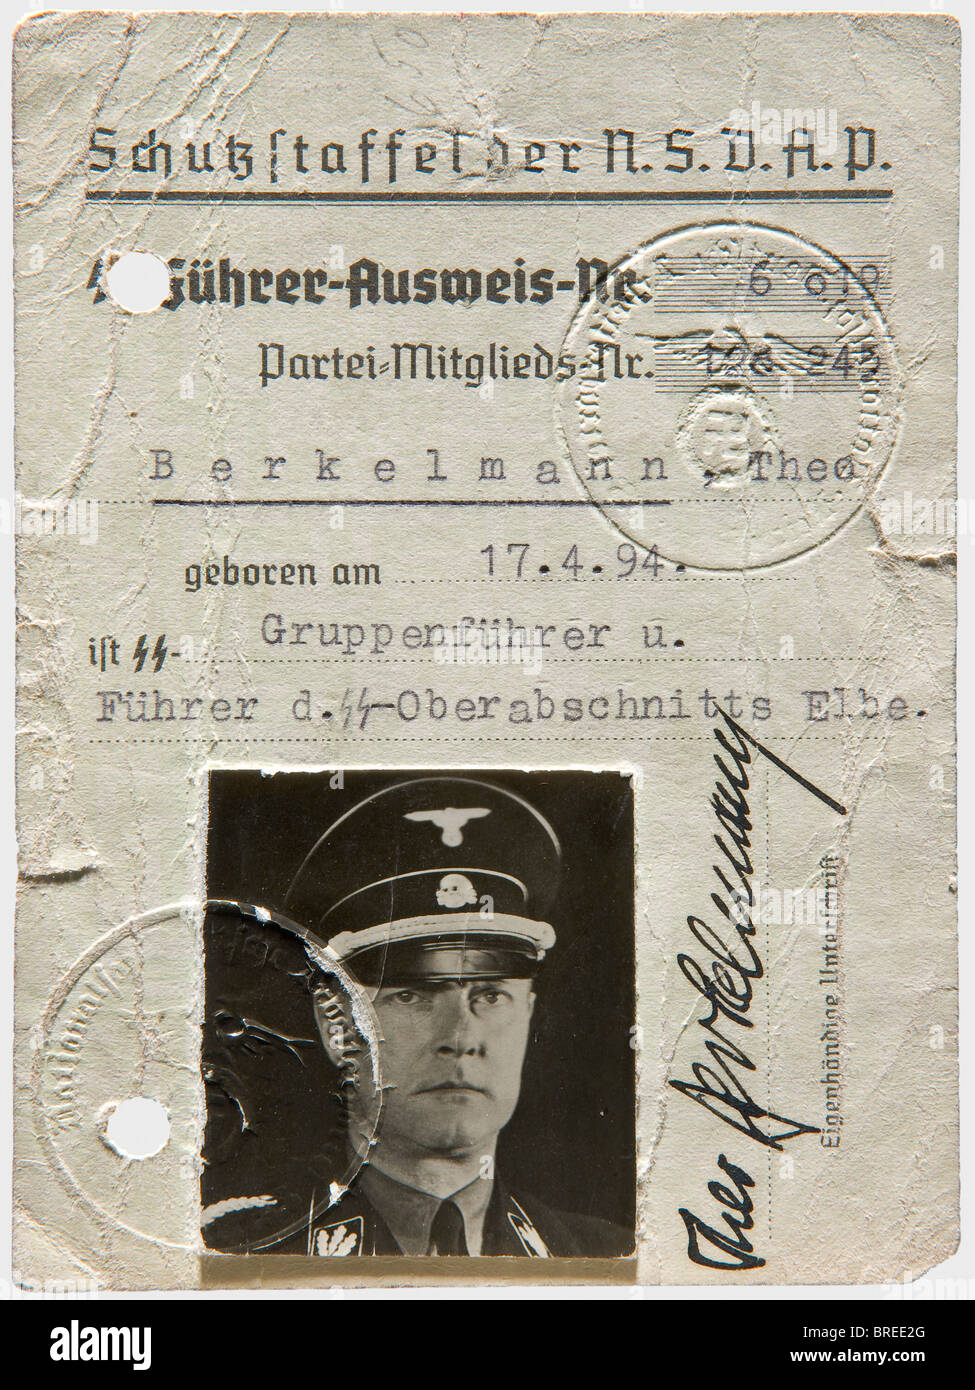 Theodor Berkelmann (1894 - 1943), his identity document for SS Leaders Identity card with number '6019' - Stock Image